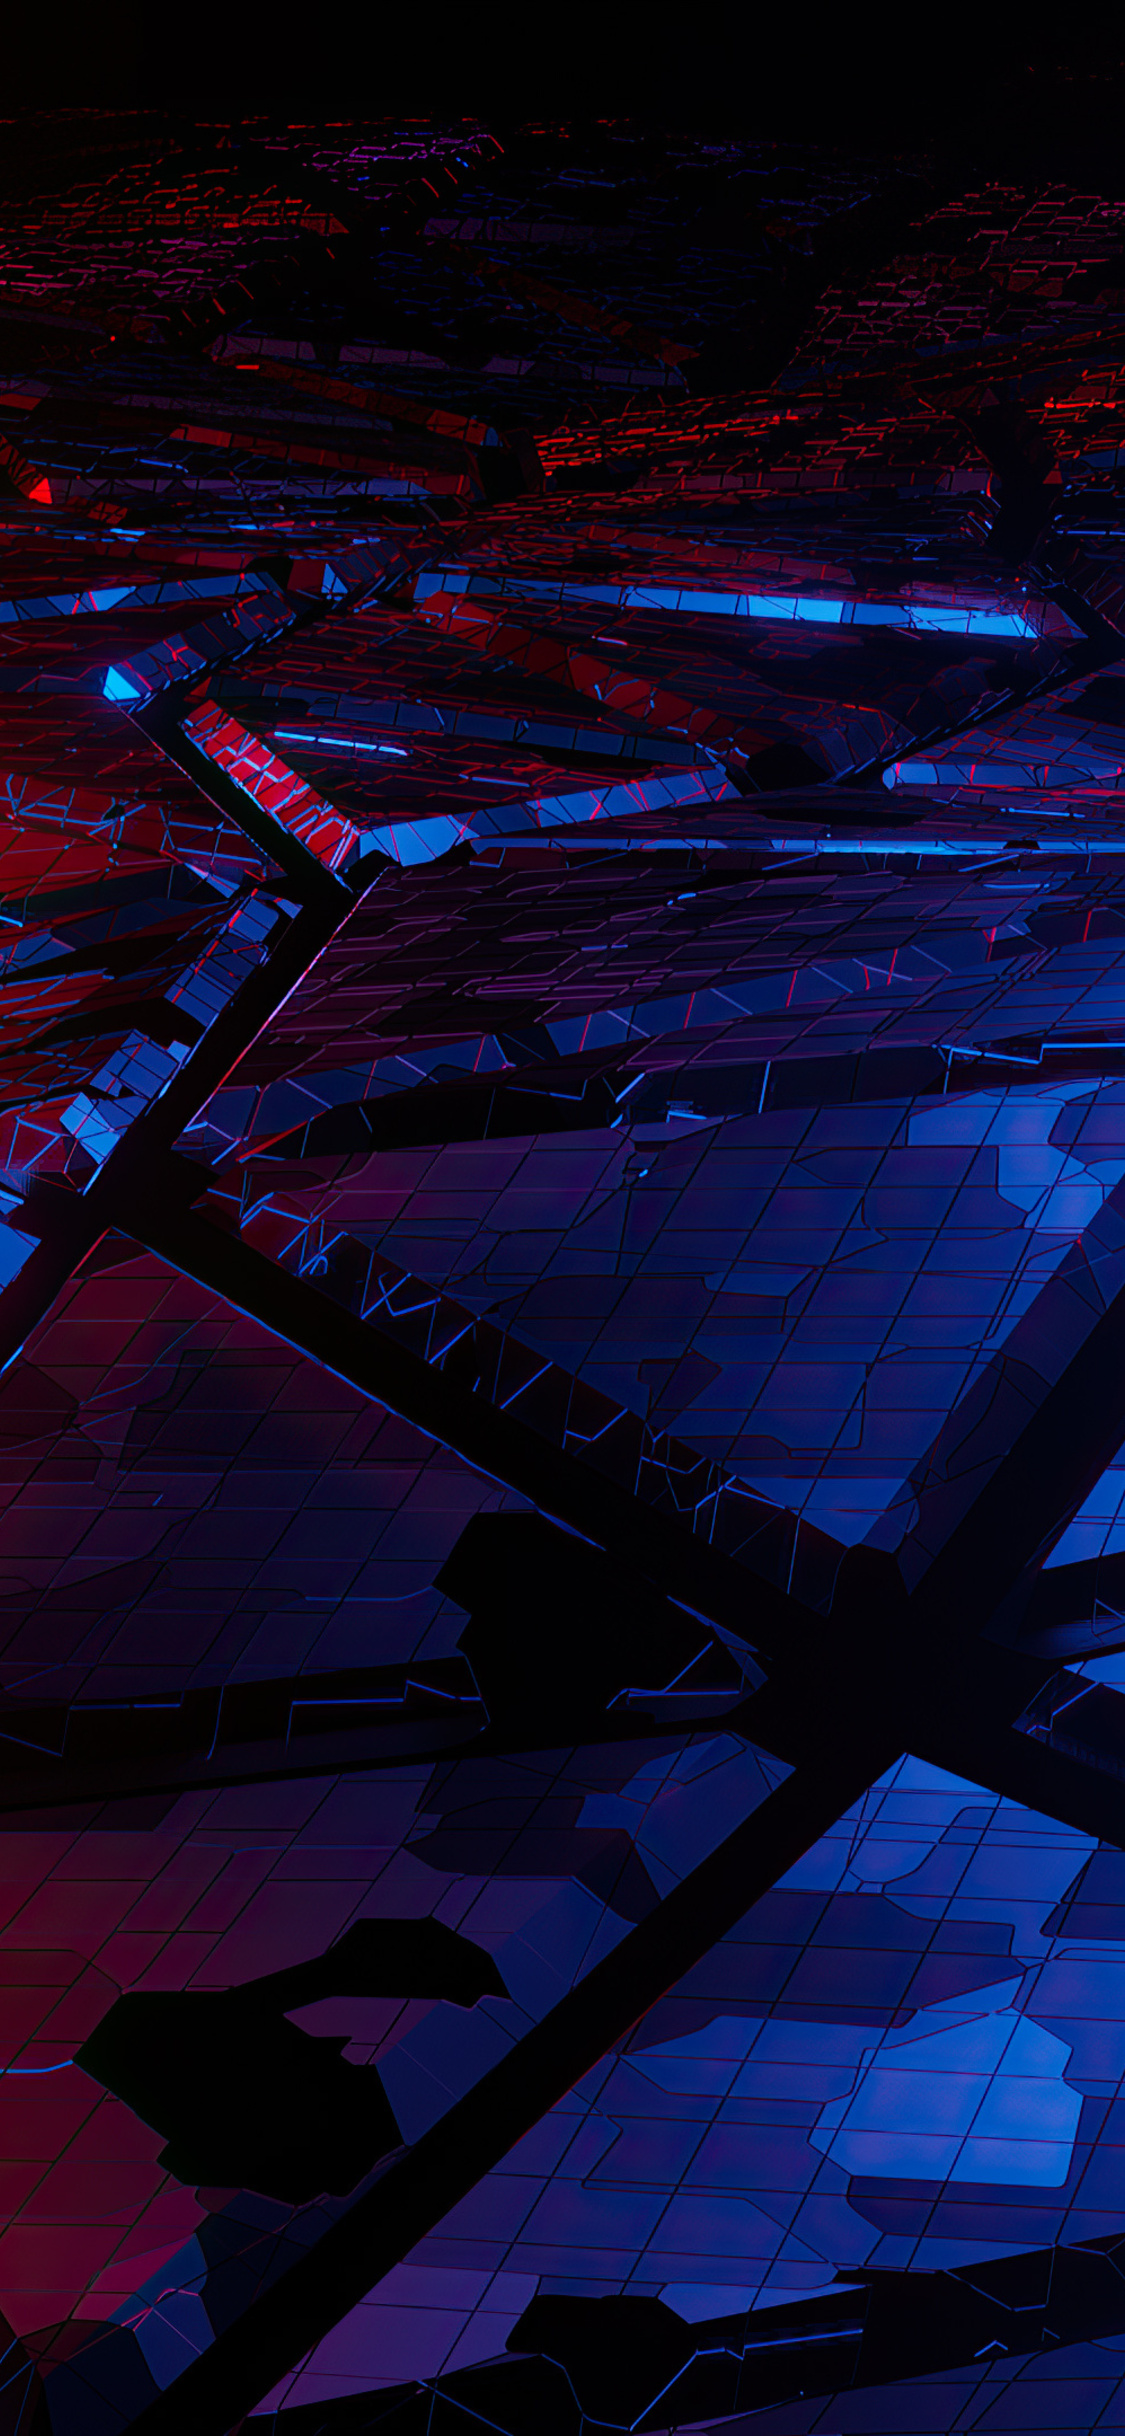 1125x2436 Red And Blue Broken Abstract 4k Iphone XS,Iphone ...